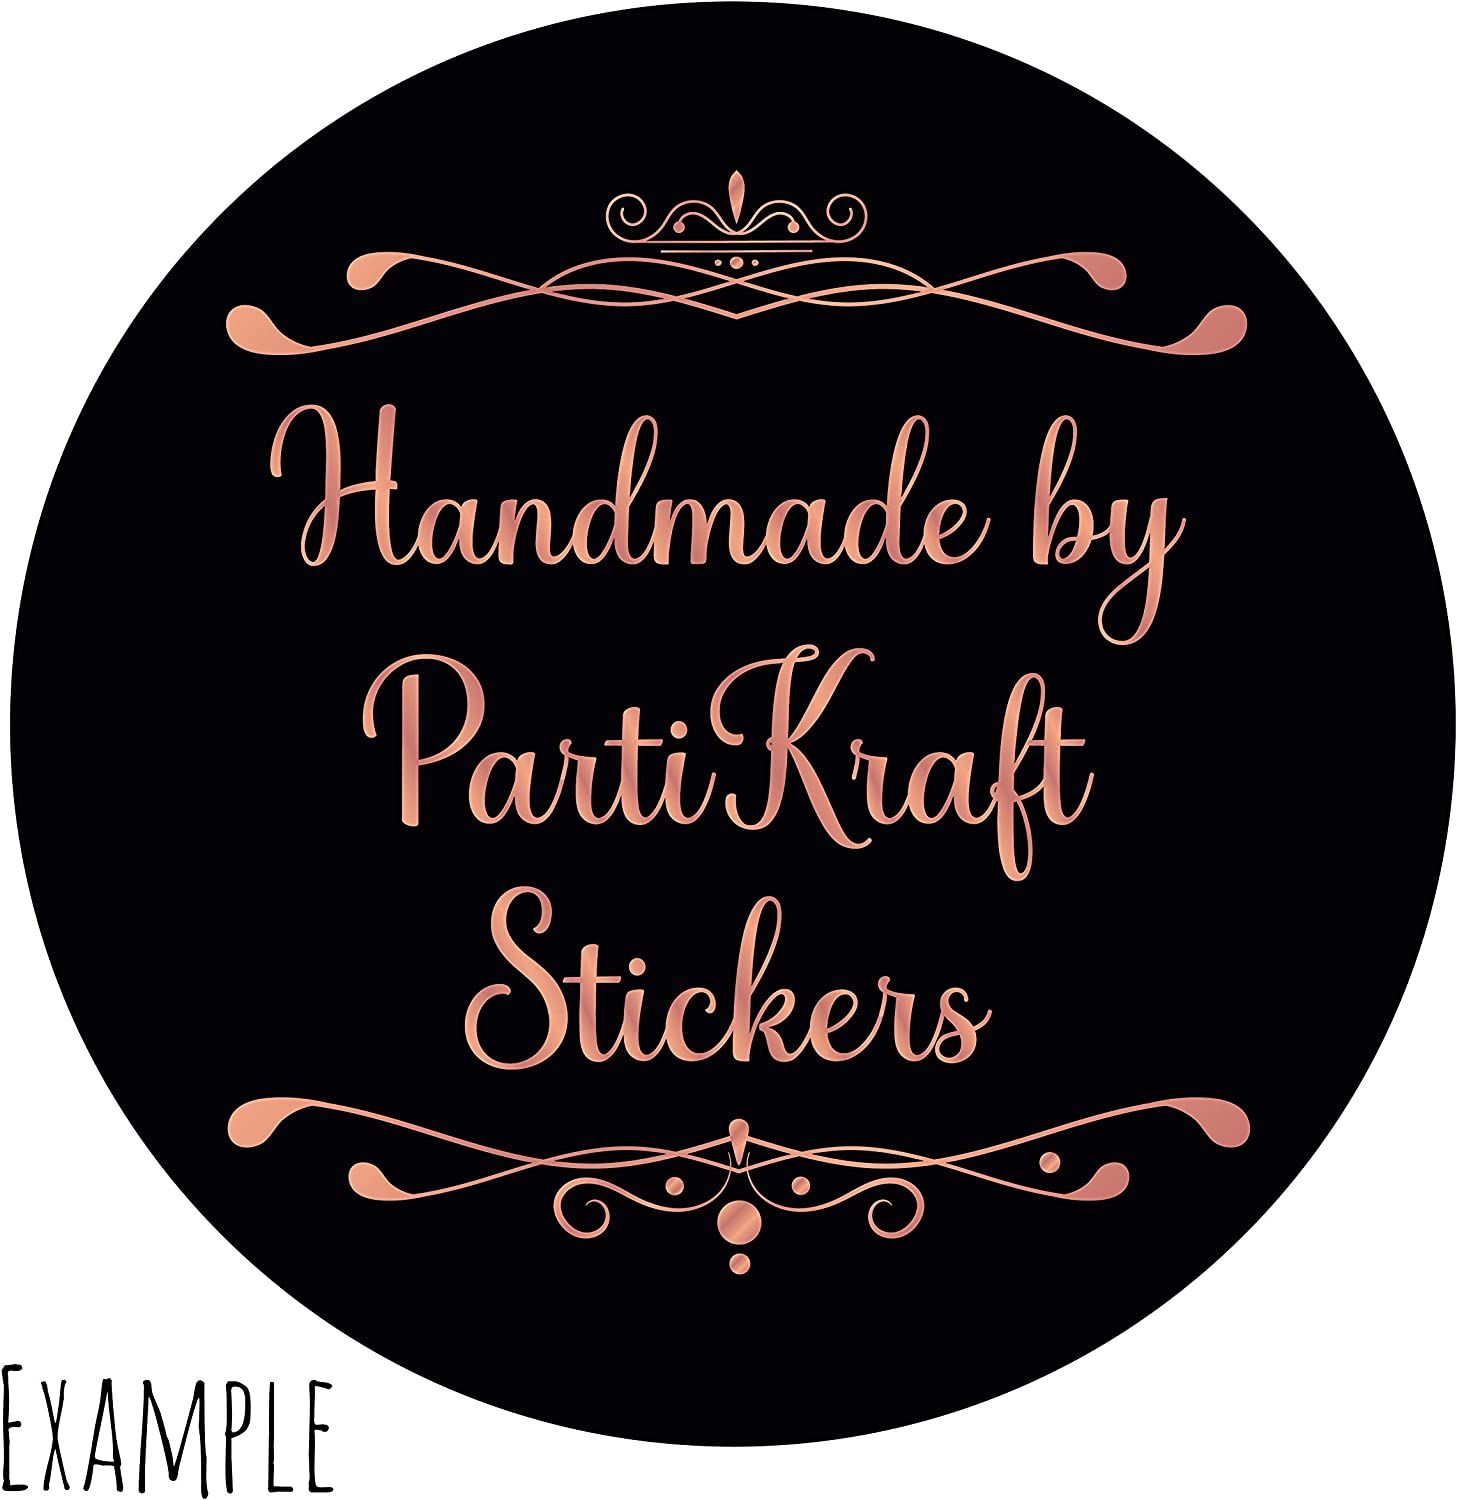 Candles Handmade Cards Soaps and more Wax Melts Cakes 45mm Stickers - 24 Pack Personalised Rose Gold and Black Stickers//Labels Perfect for your Craft Business